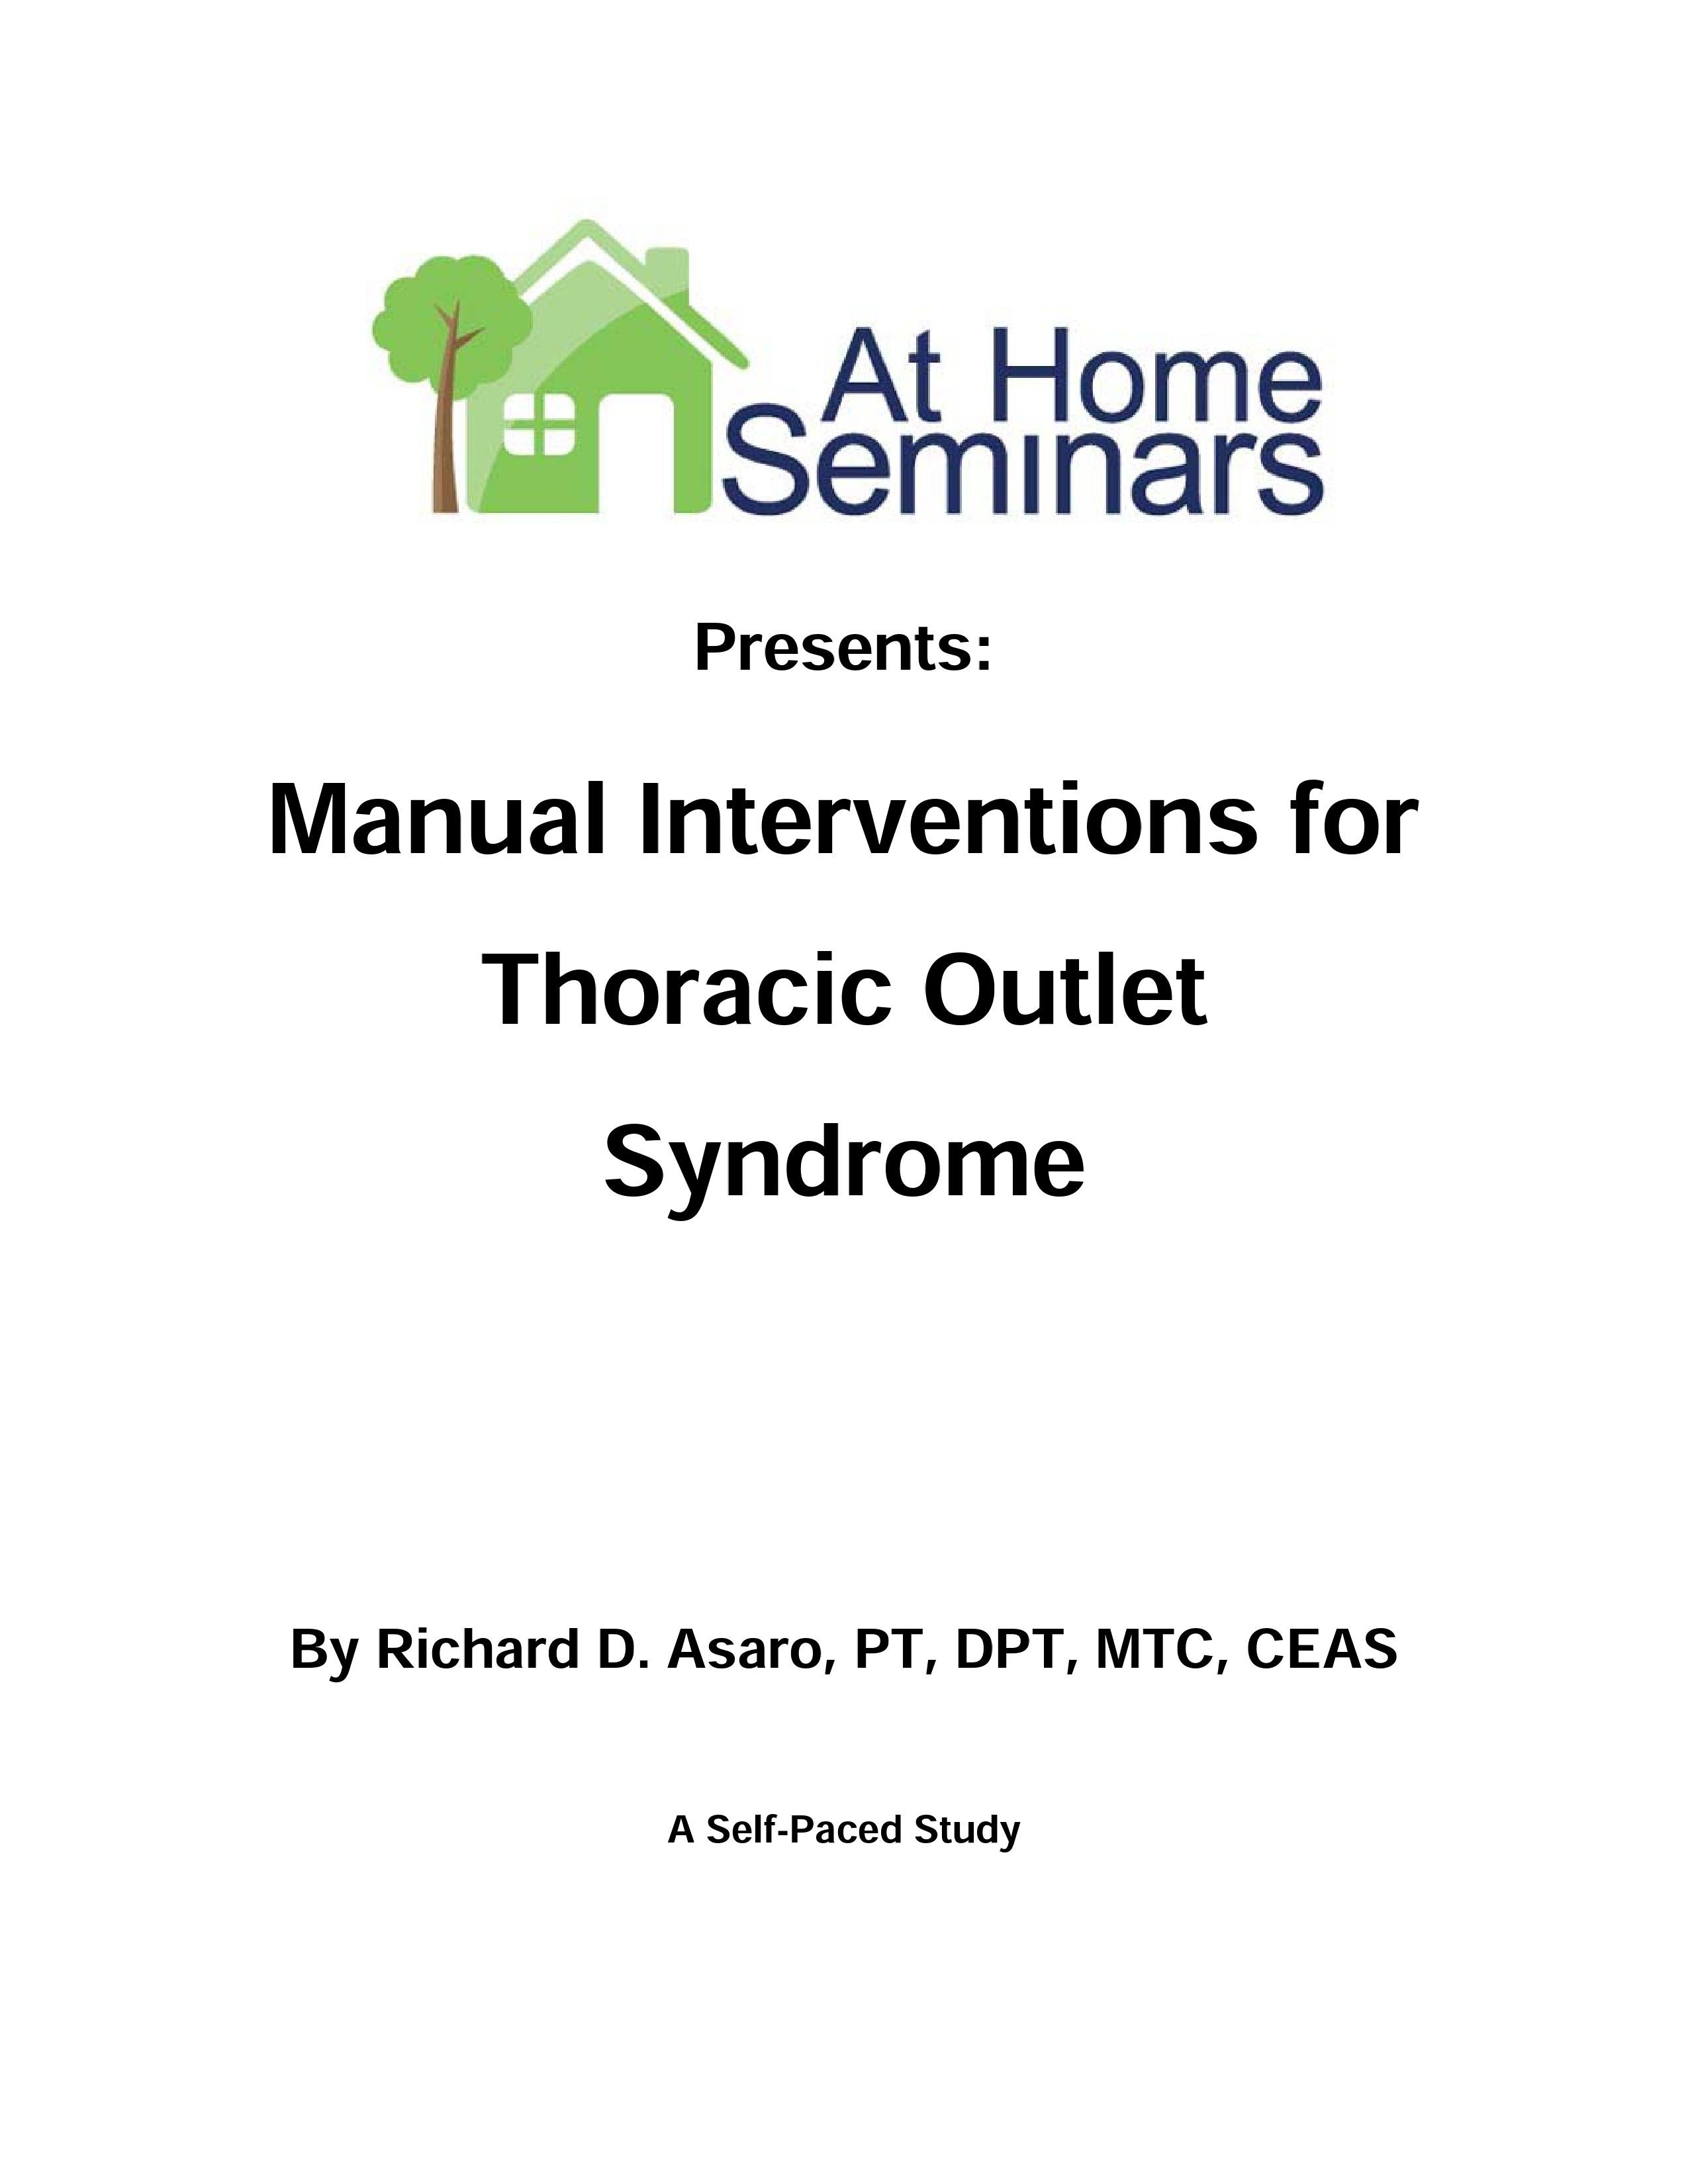 Manual Interventions for Thoracic Outlet Syndrome